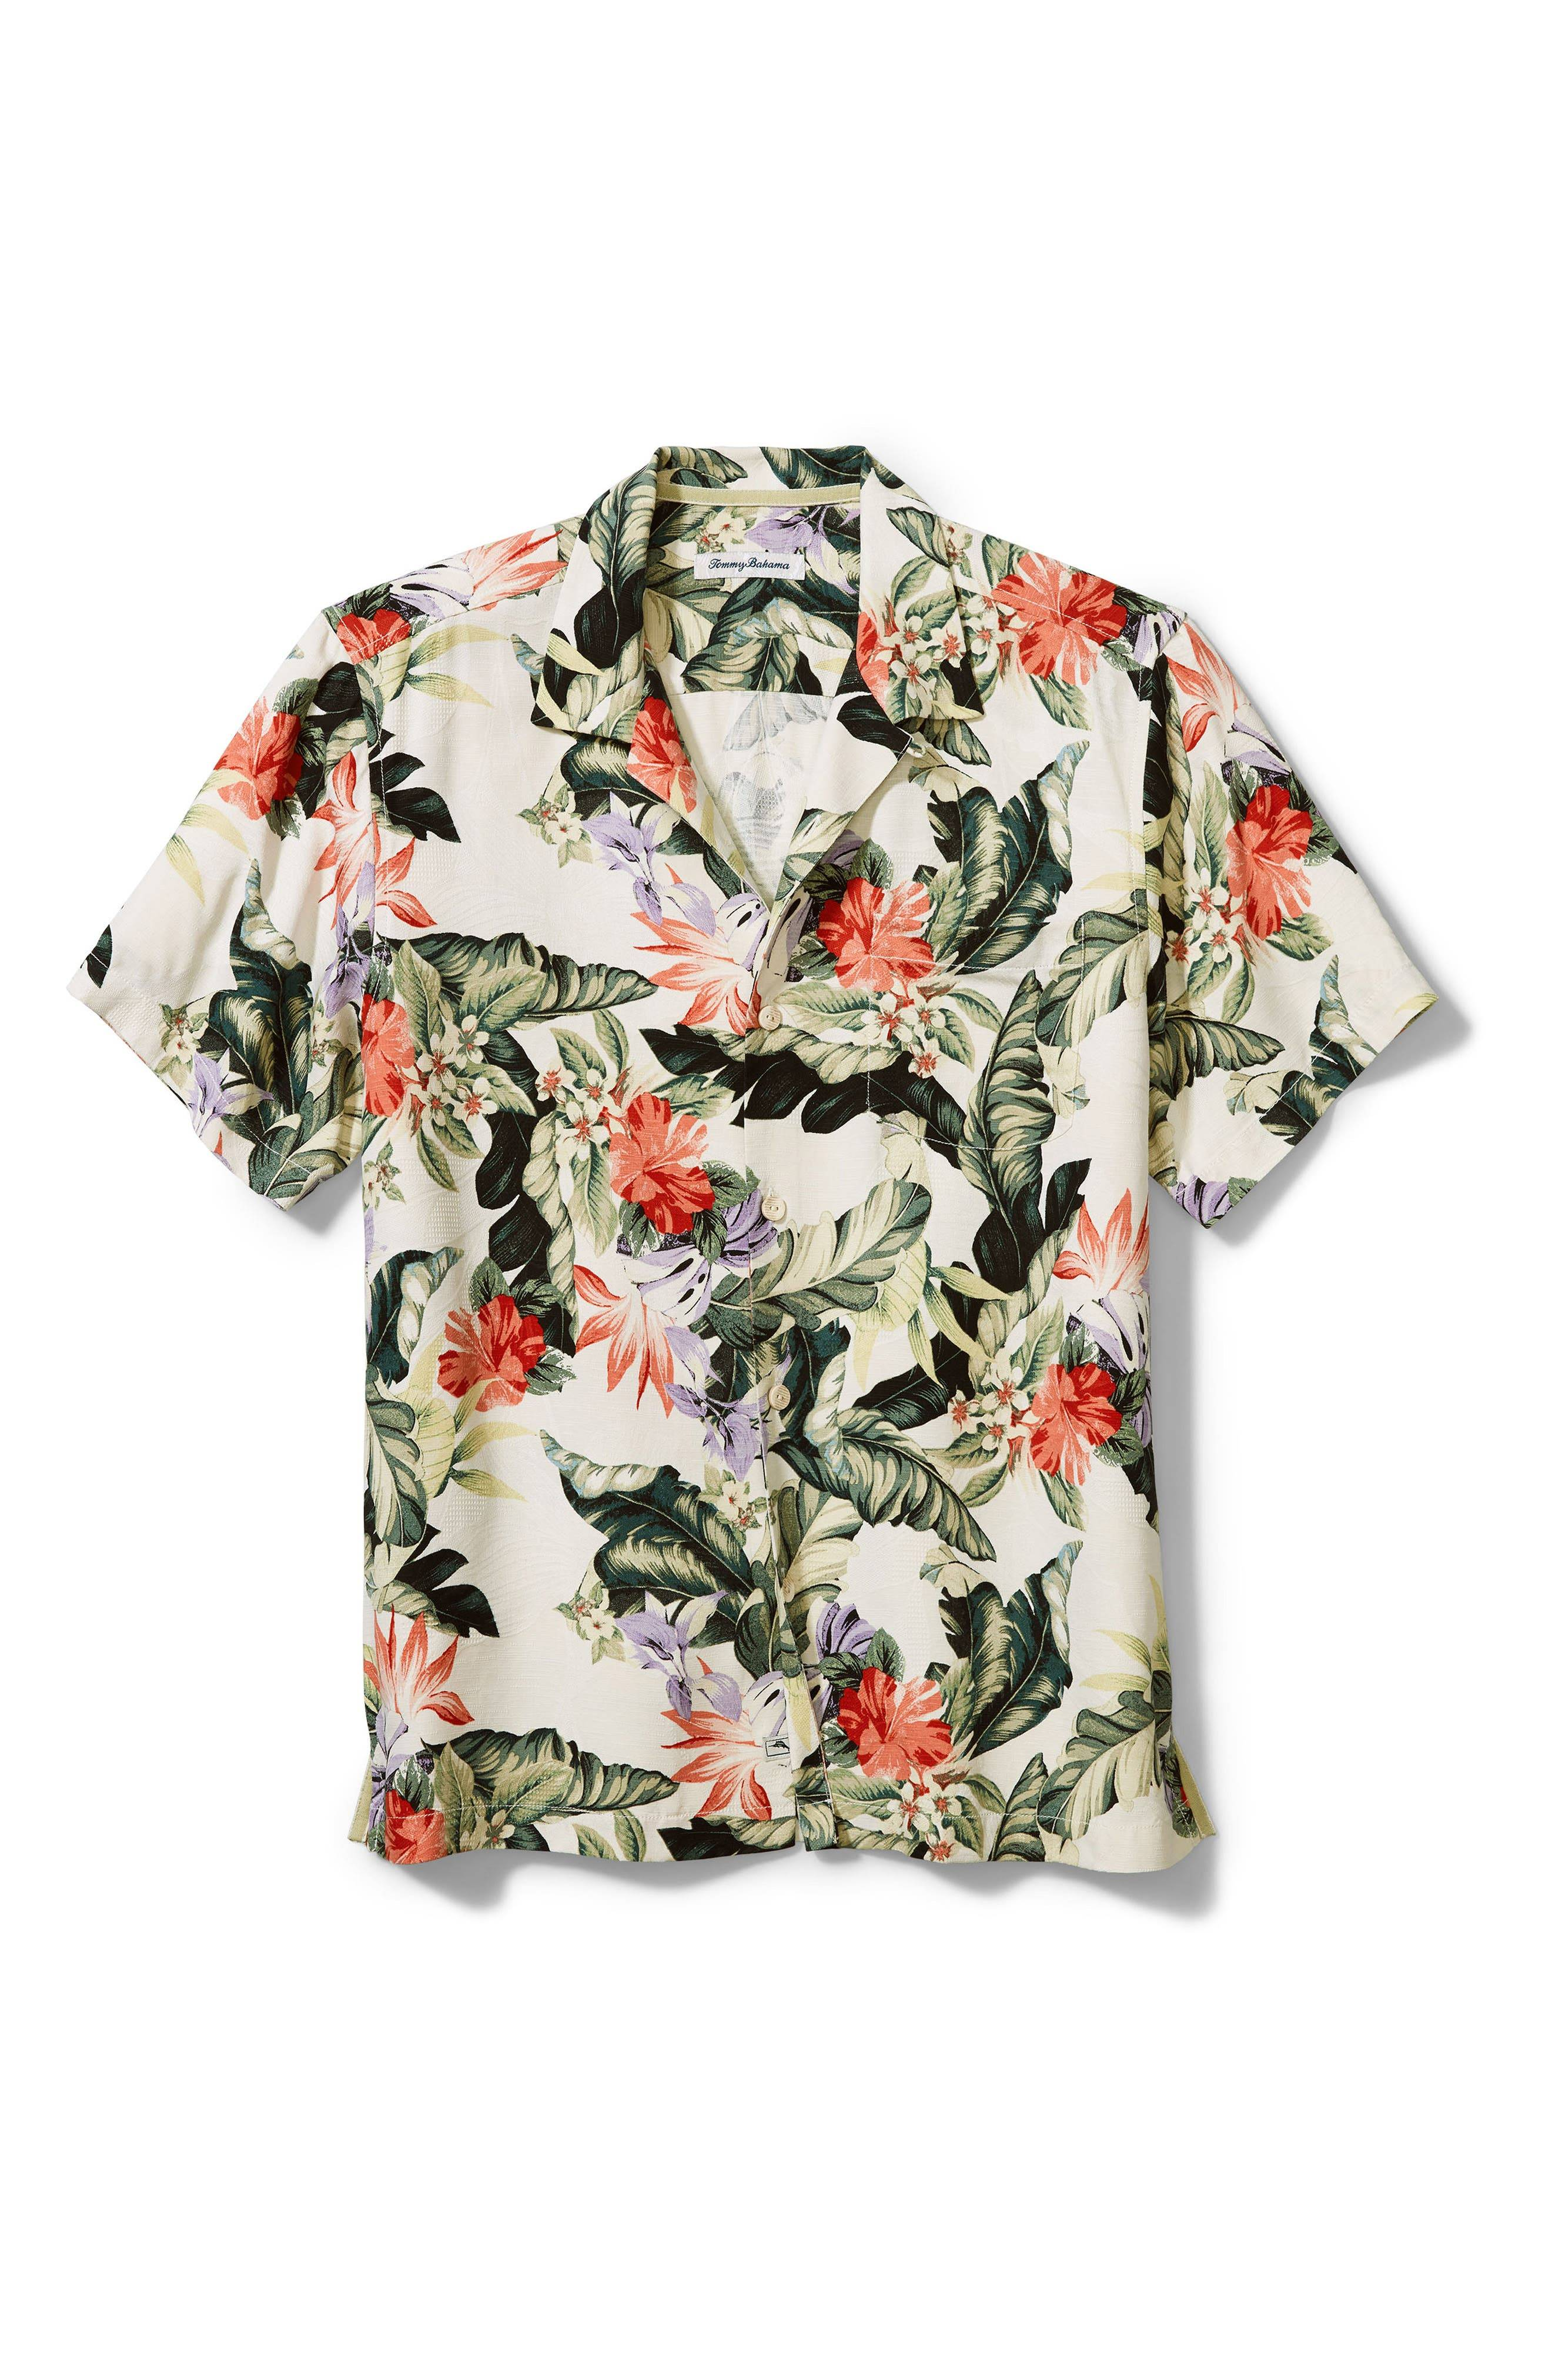 Tommy Bahama Men's Tommy Bahama Garden Of Hope & Courage Short Sleeve Silk Button-Up Shirt, Size X-Large - White